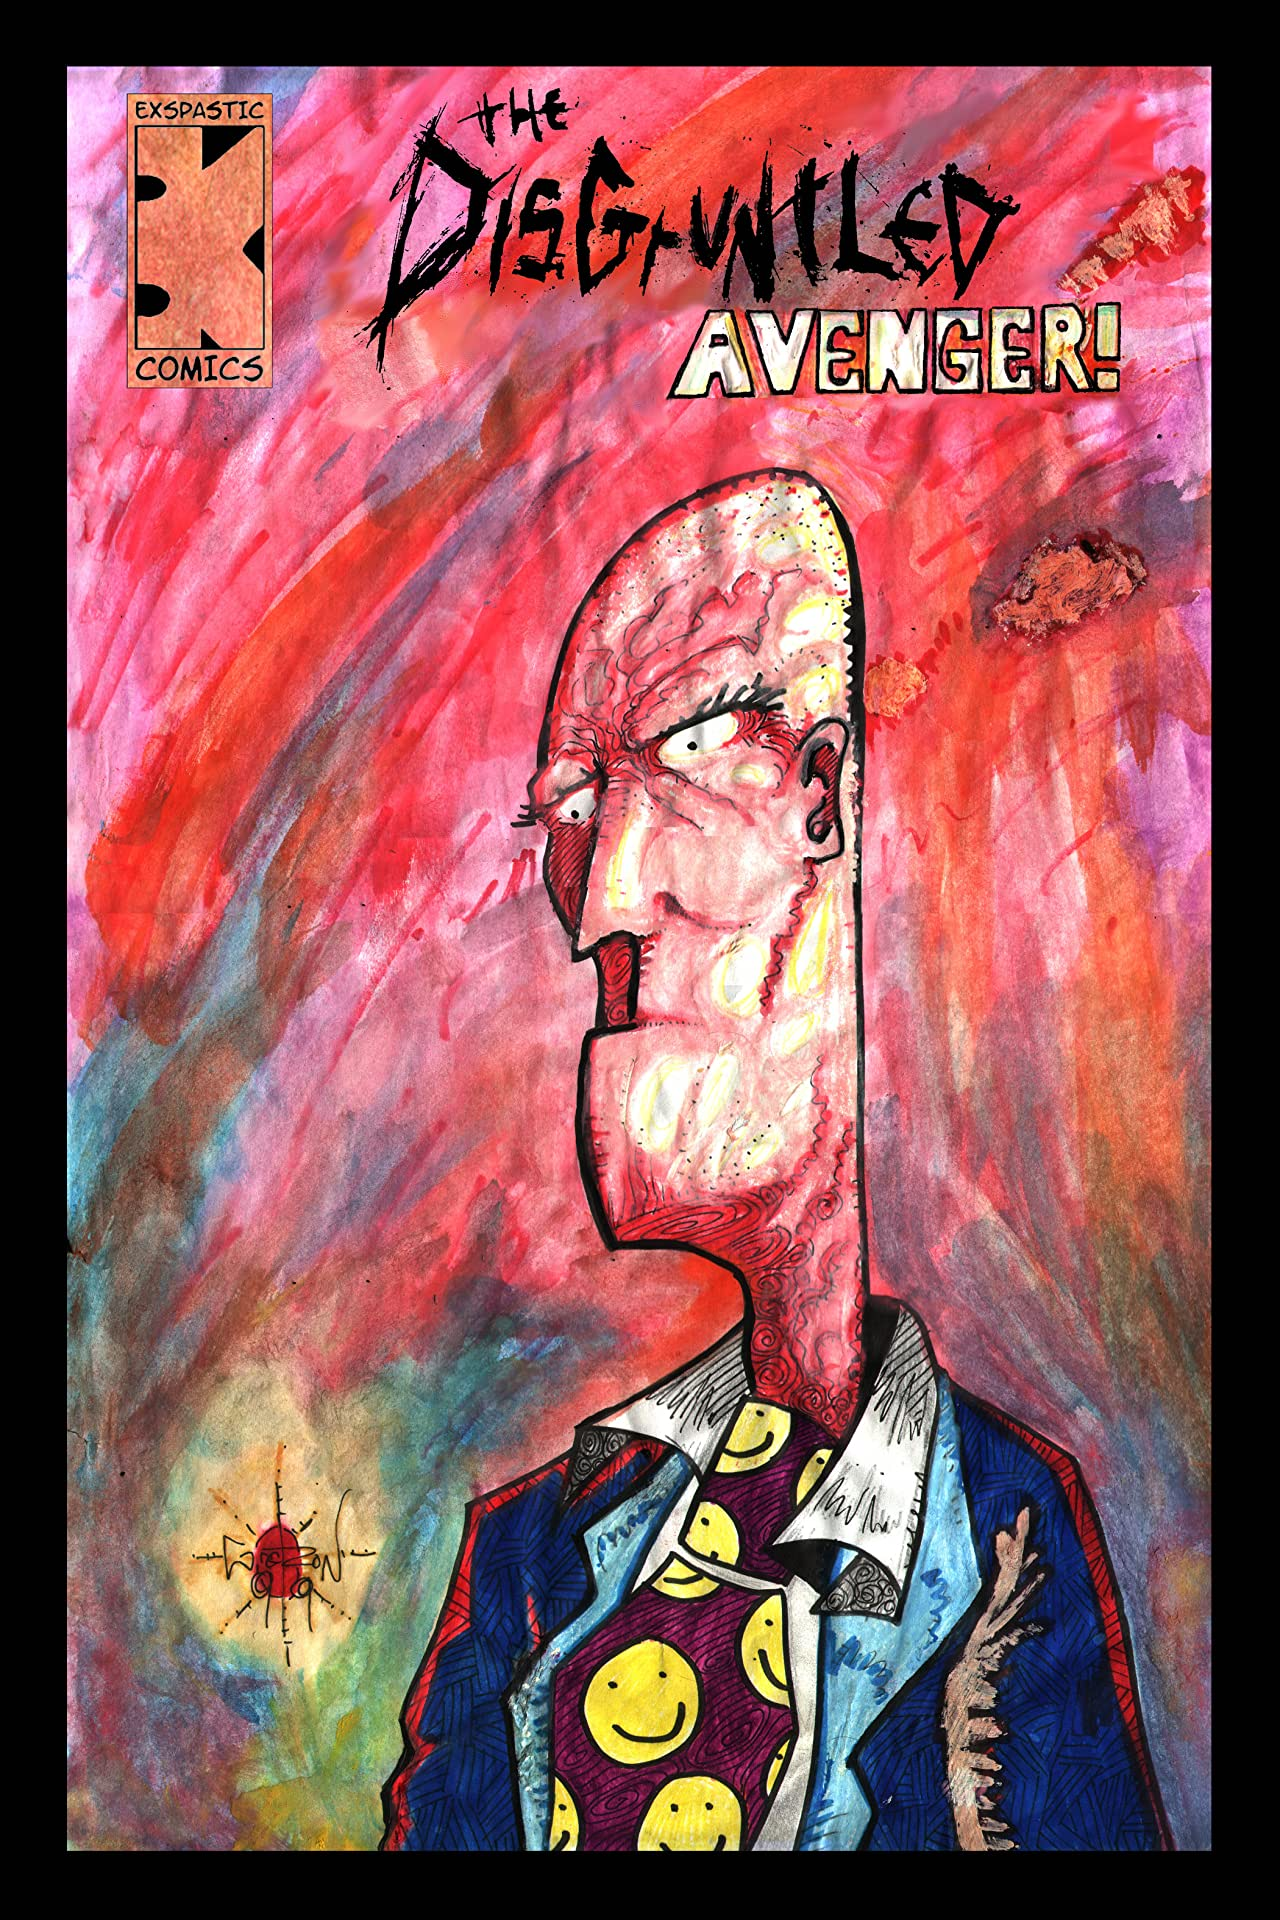 The Disgruntled Avenger #6